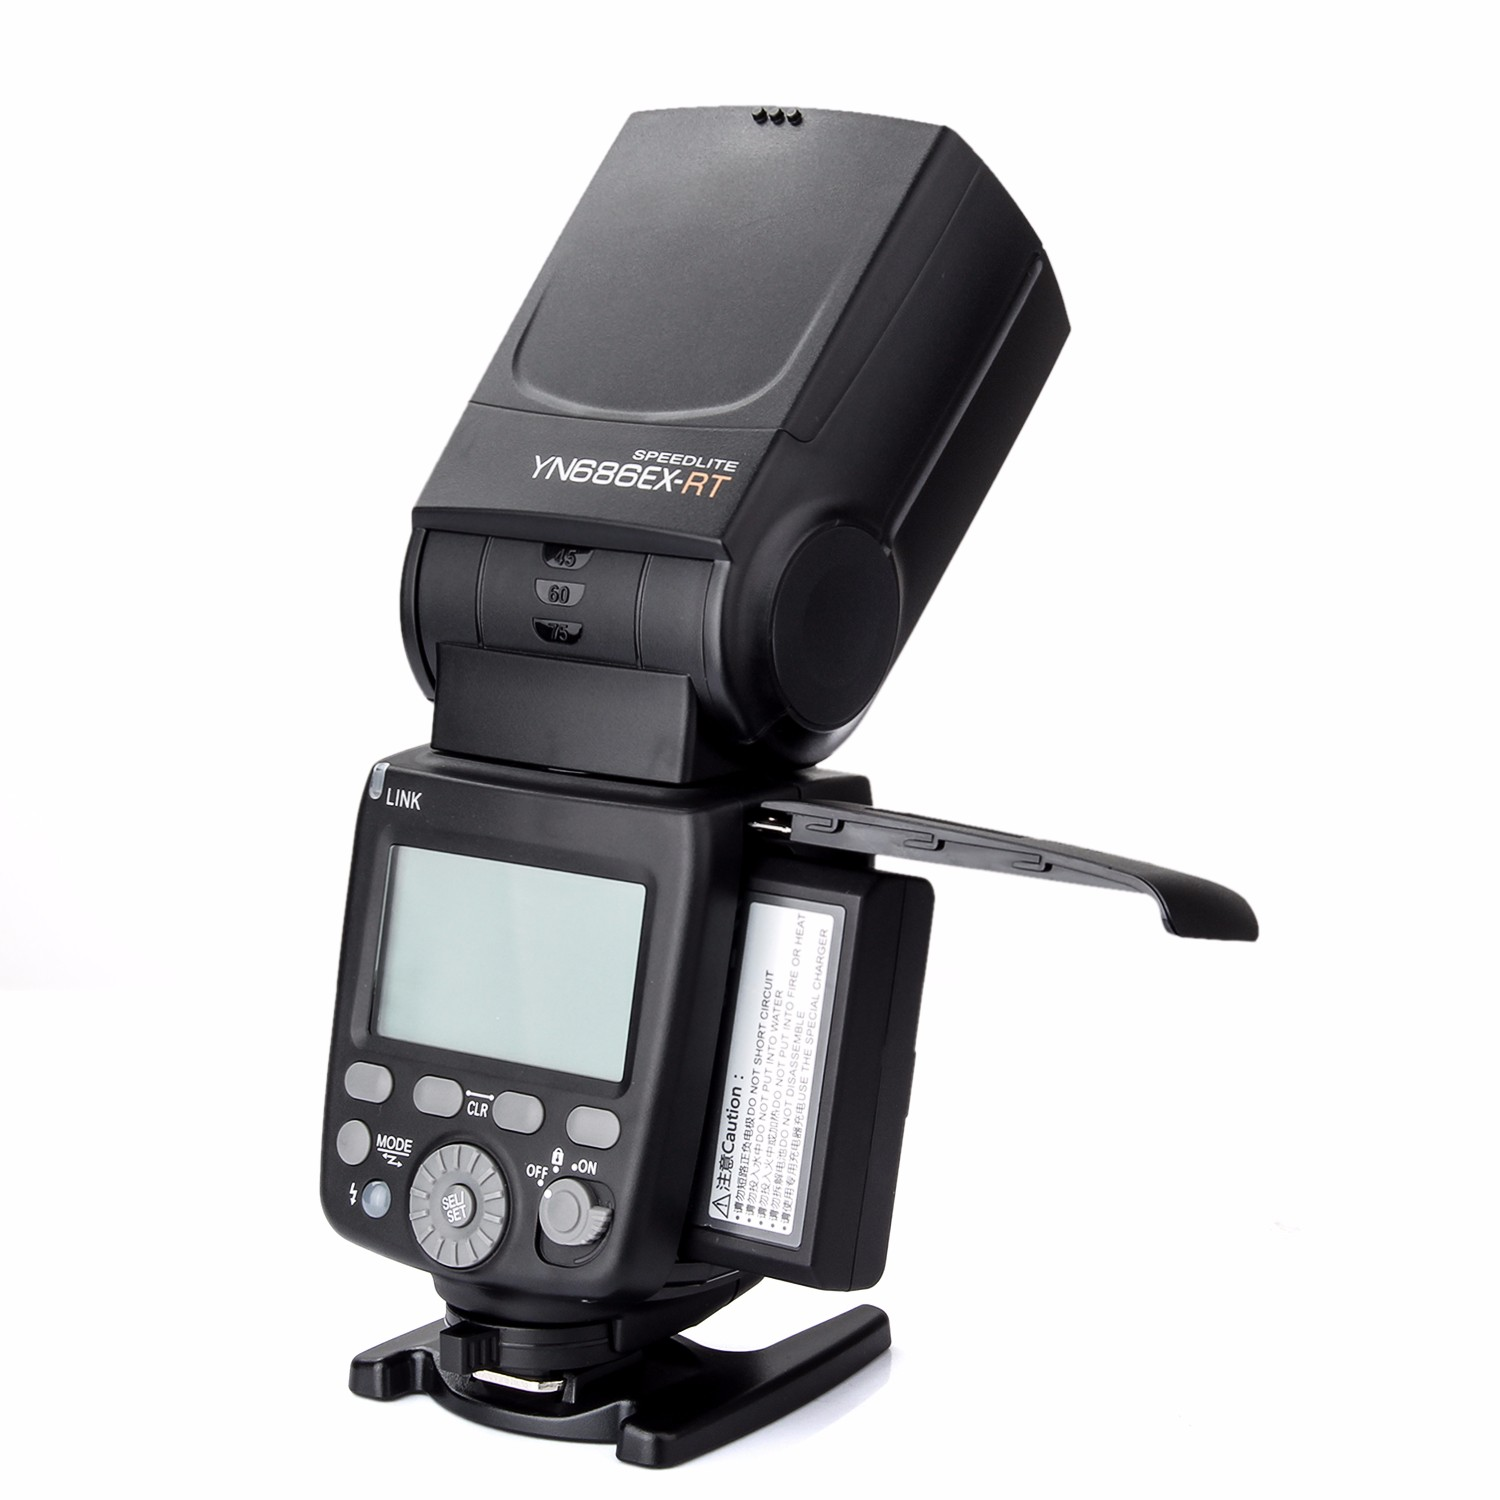 YONGNUO YN686EX RT Lithium Battery Speedlite 1 8000s TTL M MULTI Wireless Falsh For Canon Camera Photo Speedlight in Flashes from Consumer Electronics